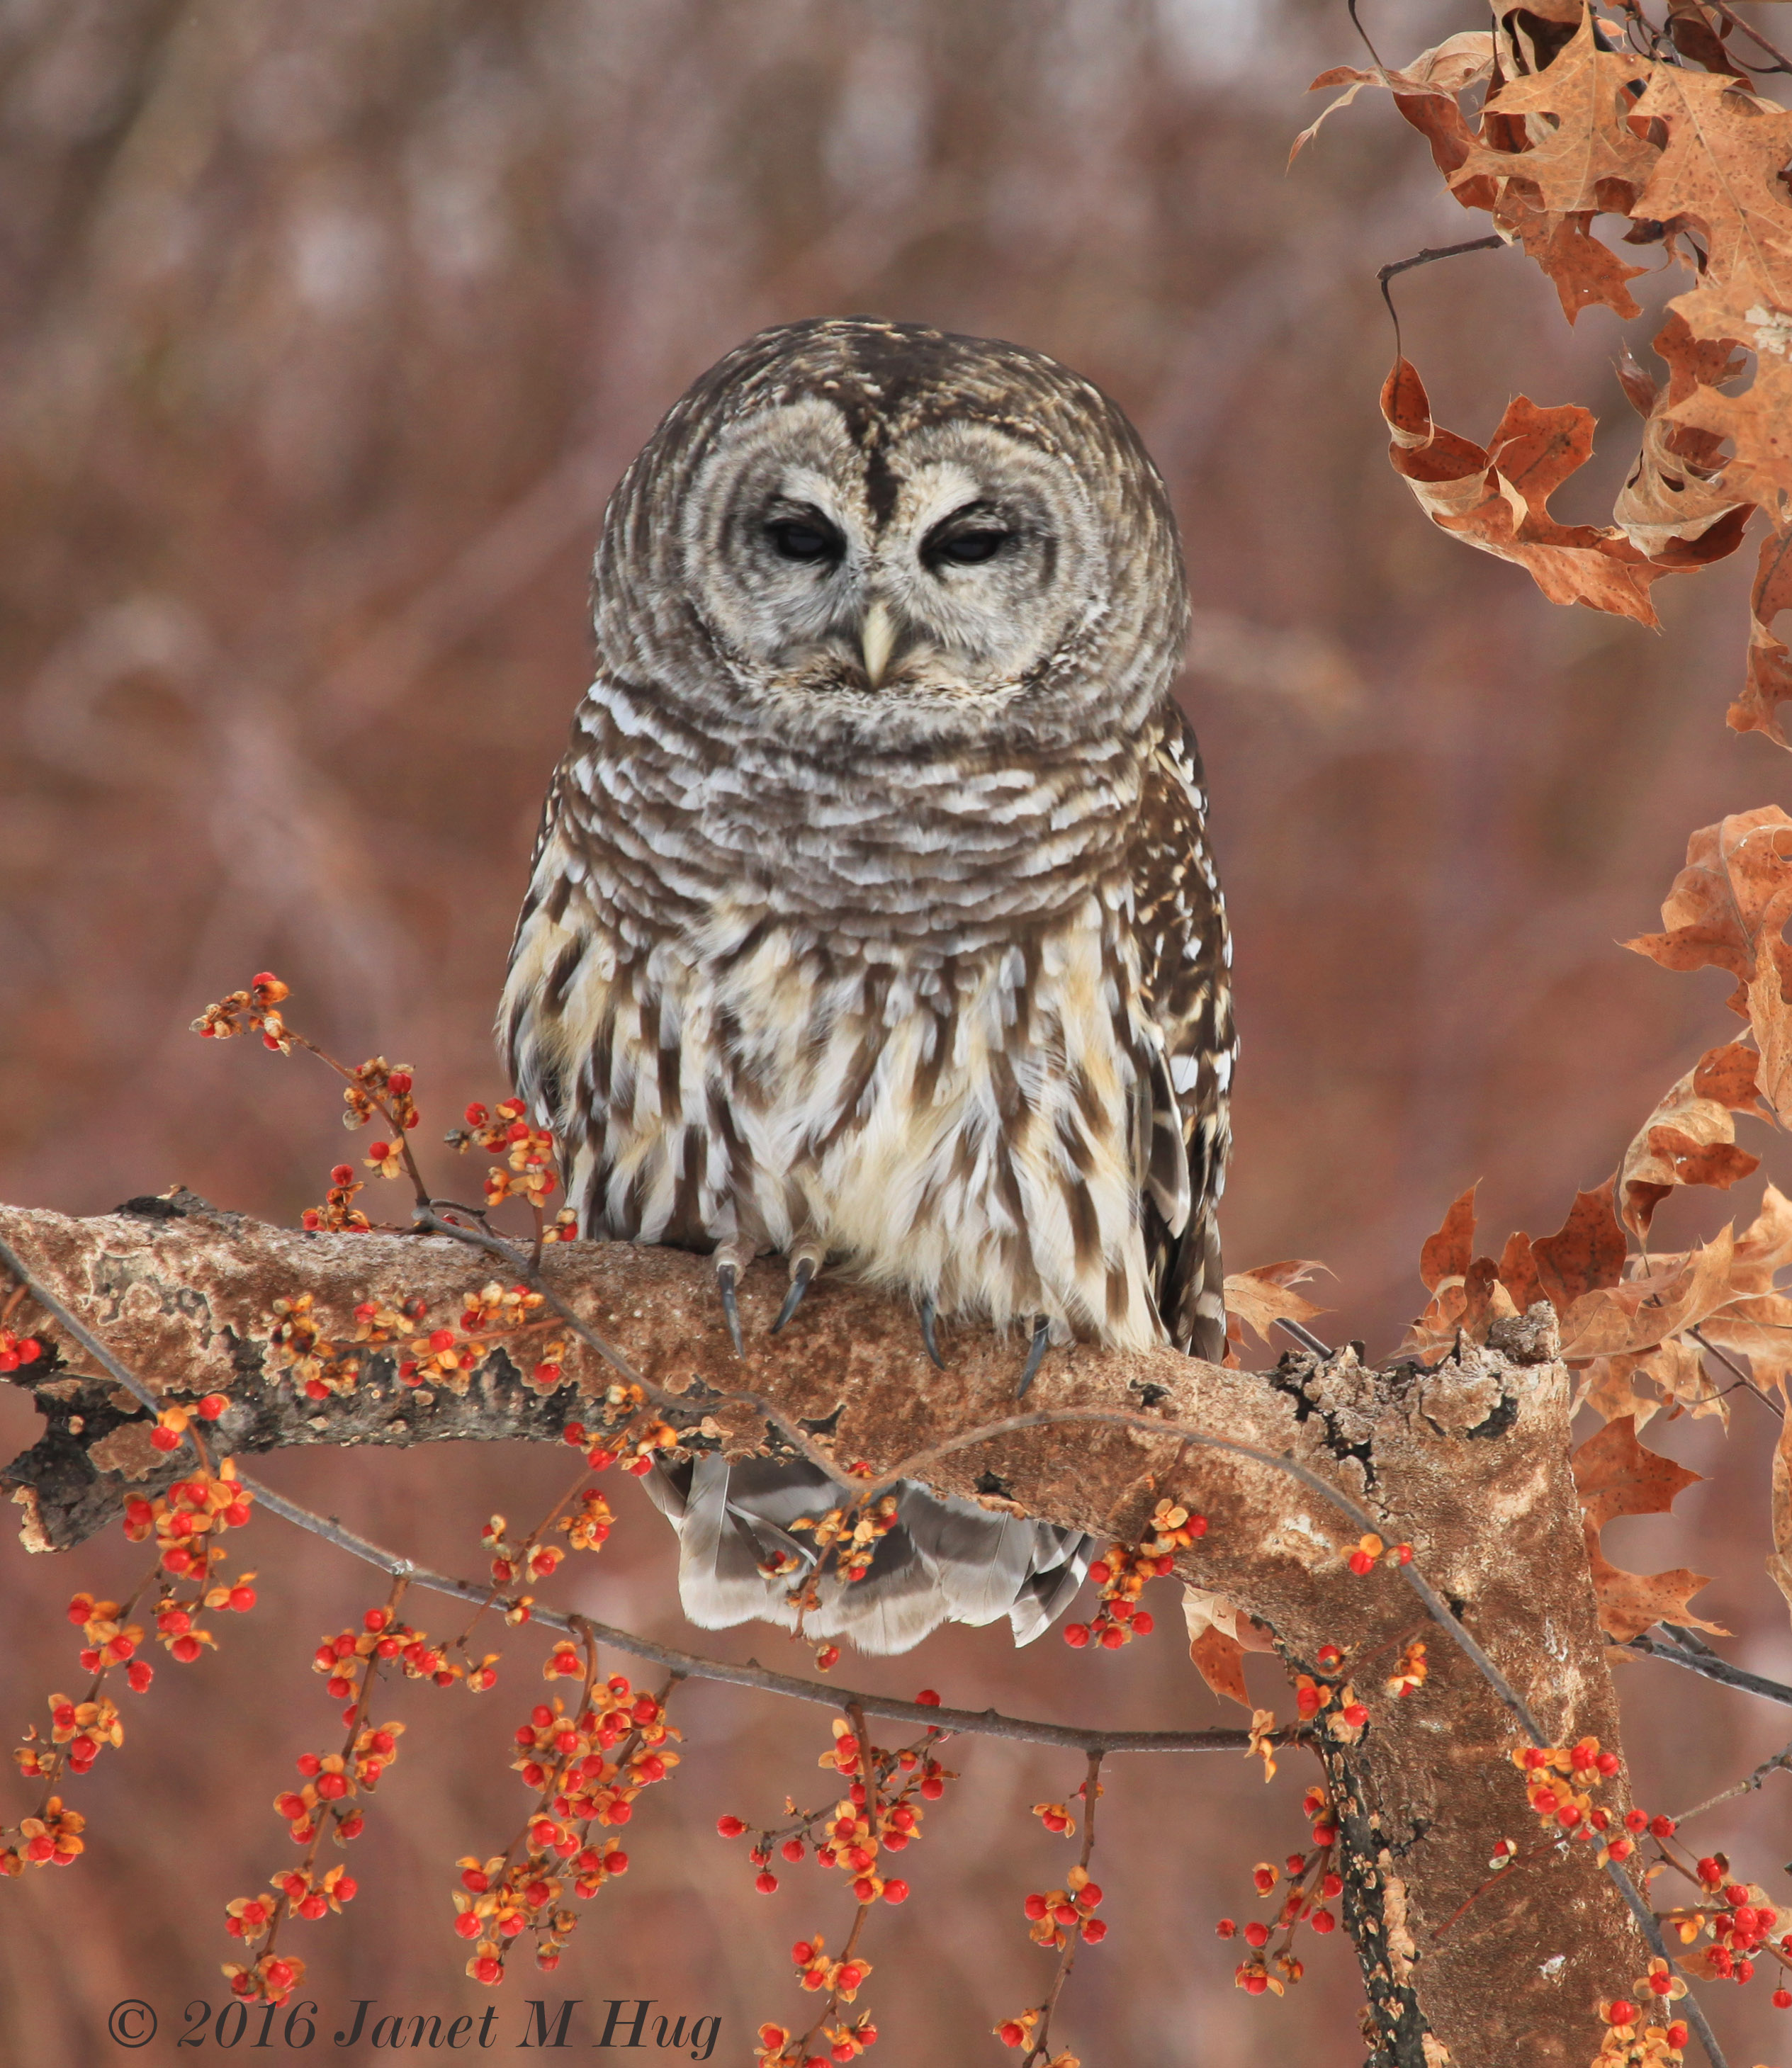 Barred Owl courtesy of Janet Hug